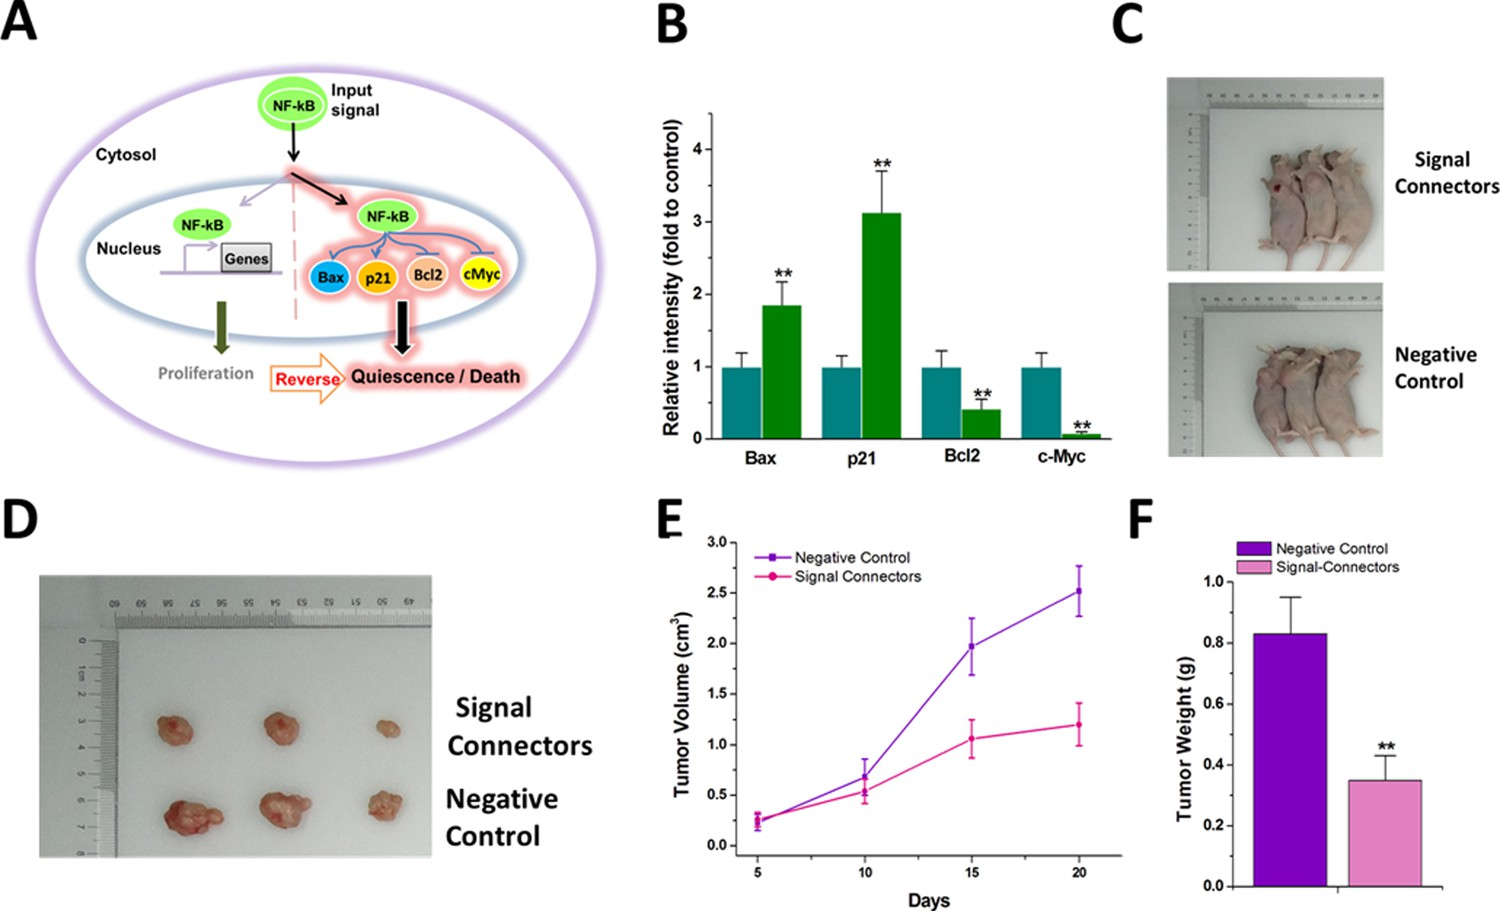 Synthesizing Artificial Devices That Redirect Cellular Information Basis Of Different Regulator Types Principles Genetic Circuit The Signal Connector Induces Simultaneous Activation And Repression Genes In Response To Oncogenic Redirects Signaling